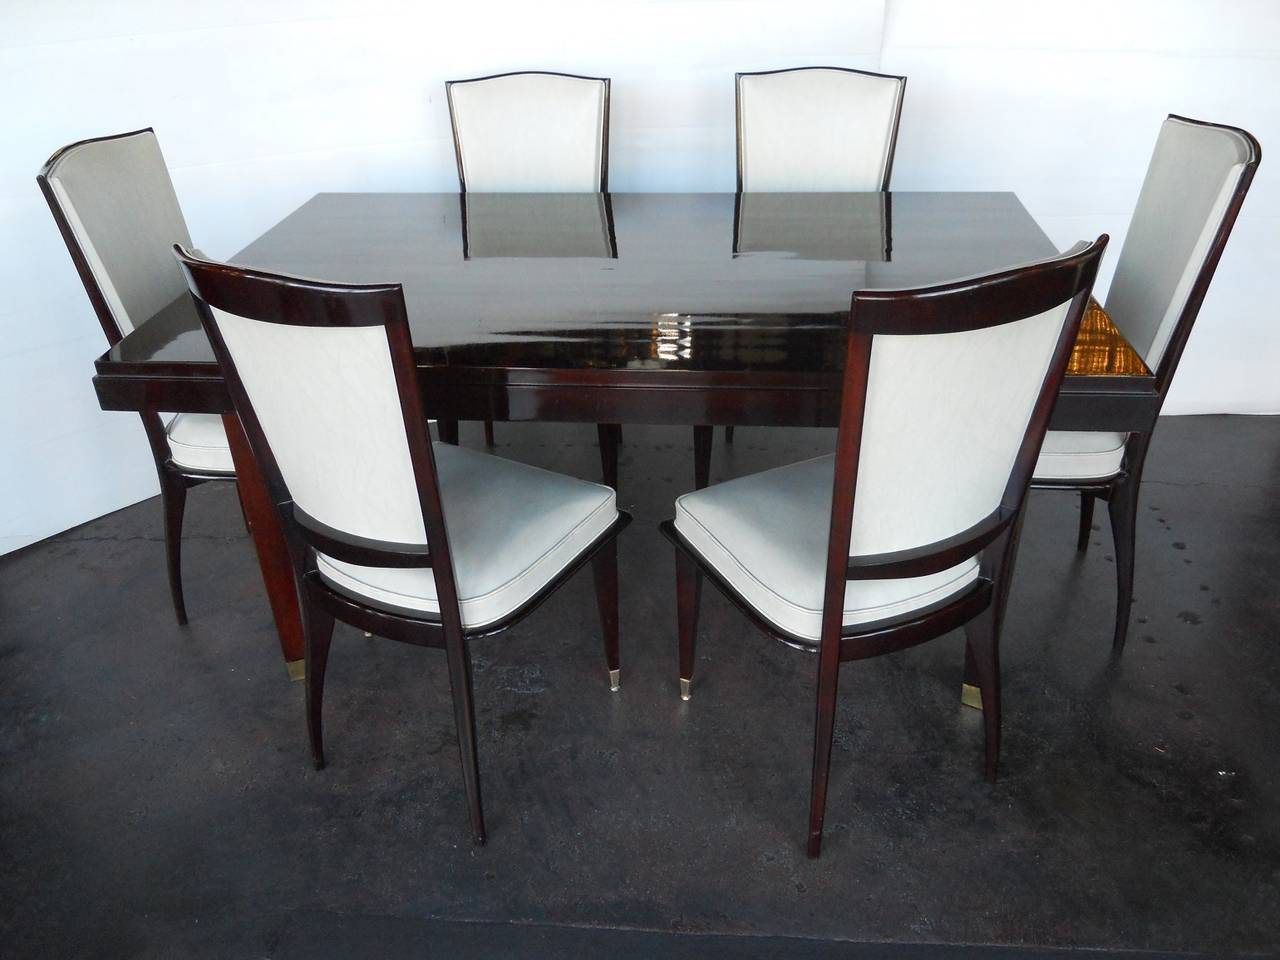 Elegant Art Deco Dining Room Set By Sviadocht Freres At